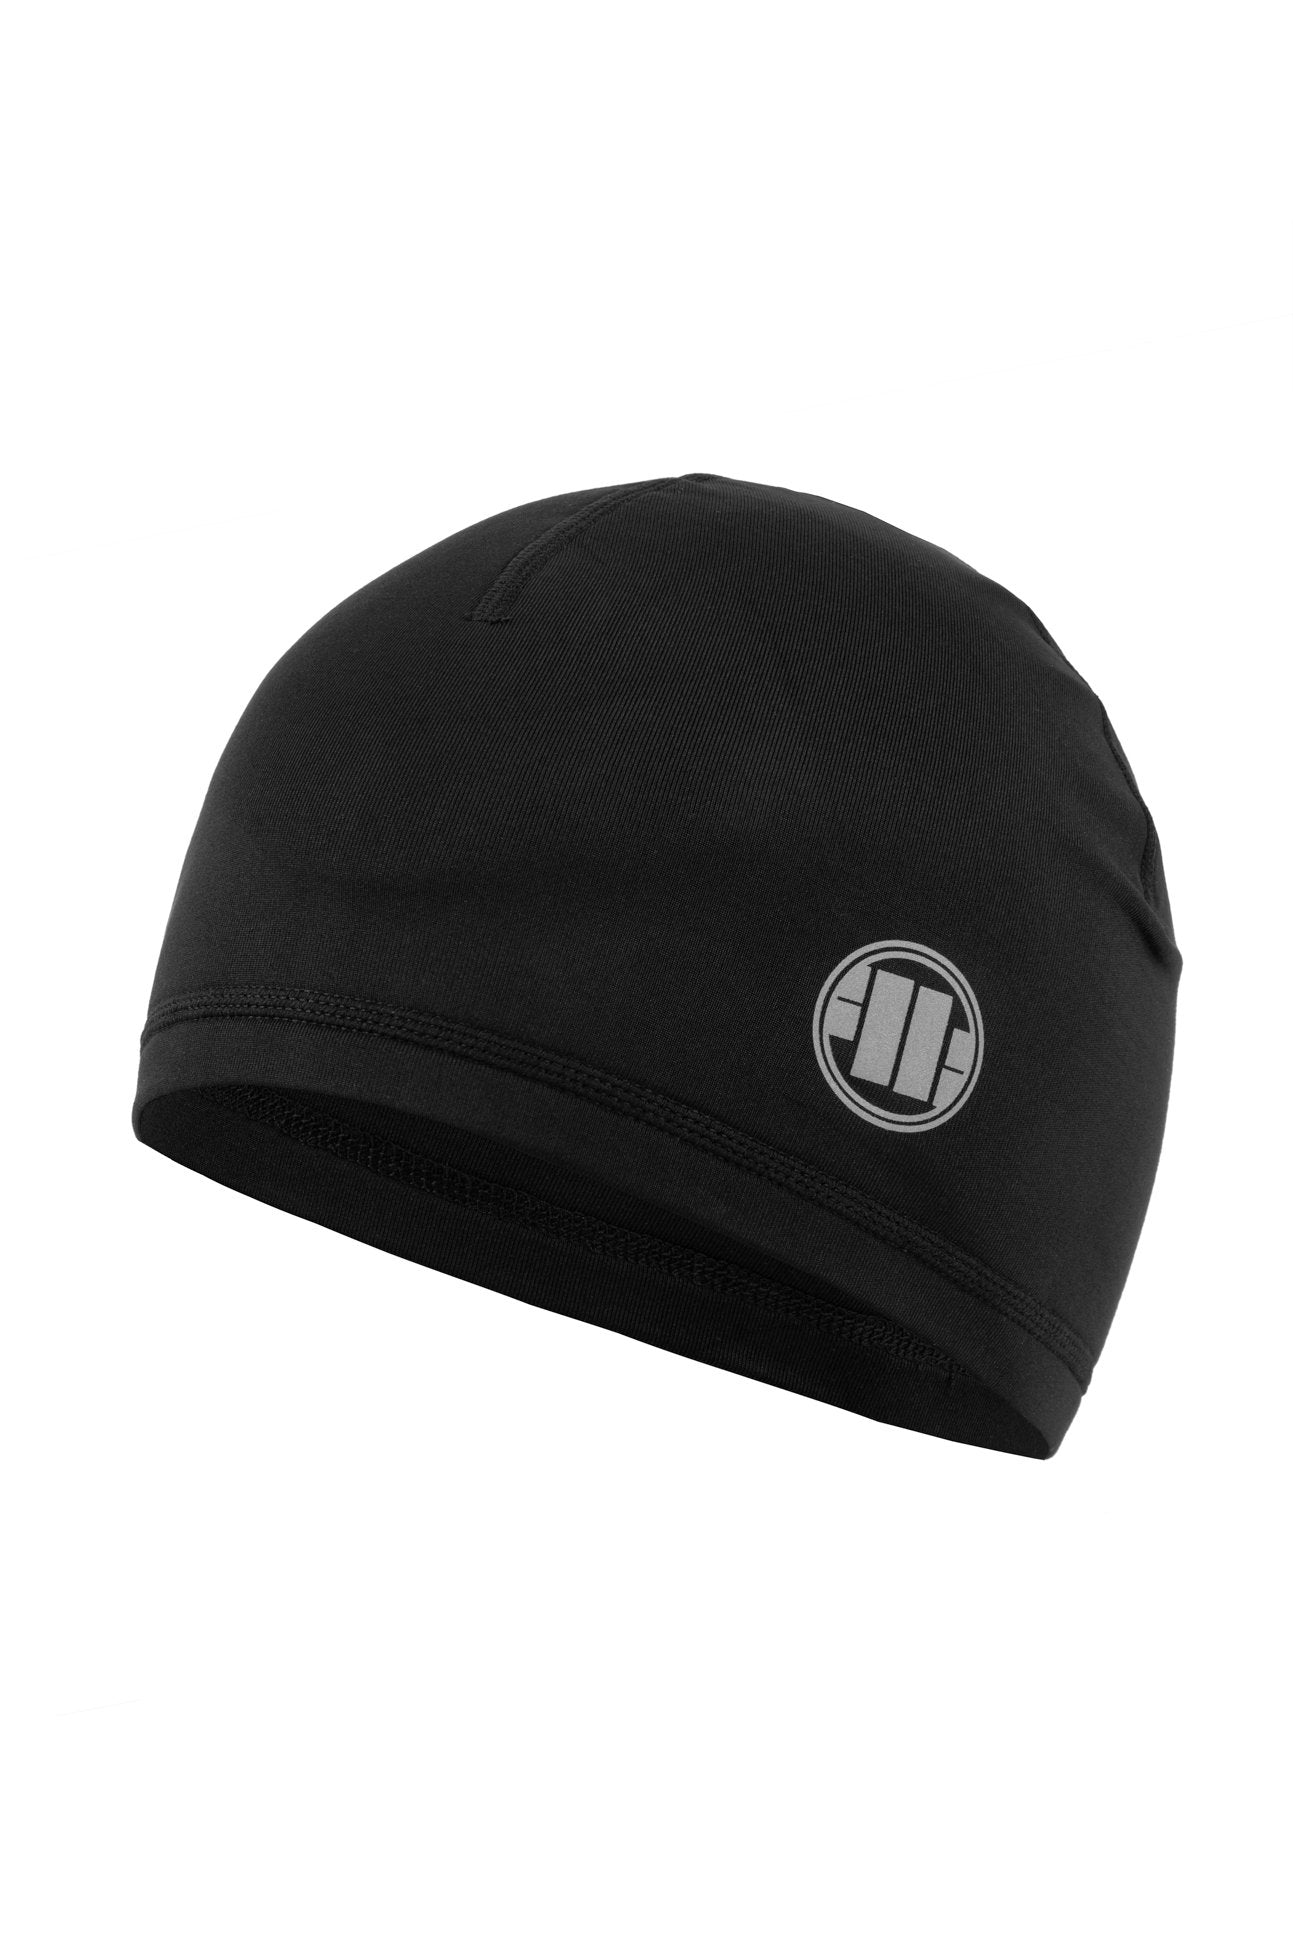 SMALL LOGO SPECIAL SPORT COMPRESSION BEANIE BLACK - pitbullwestcoast